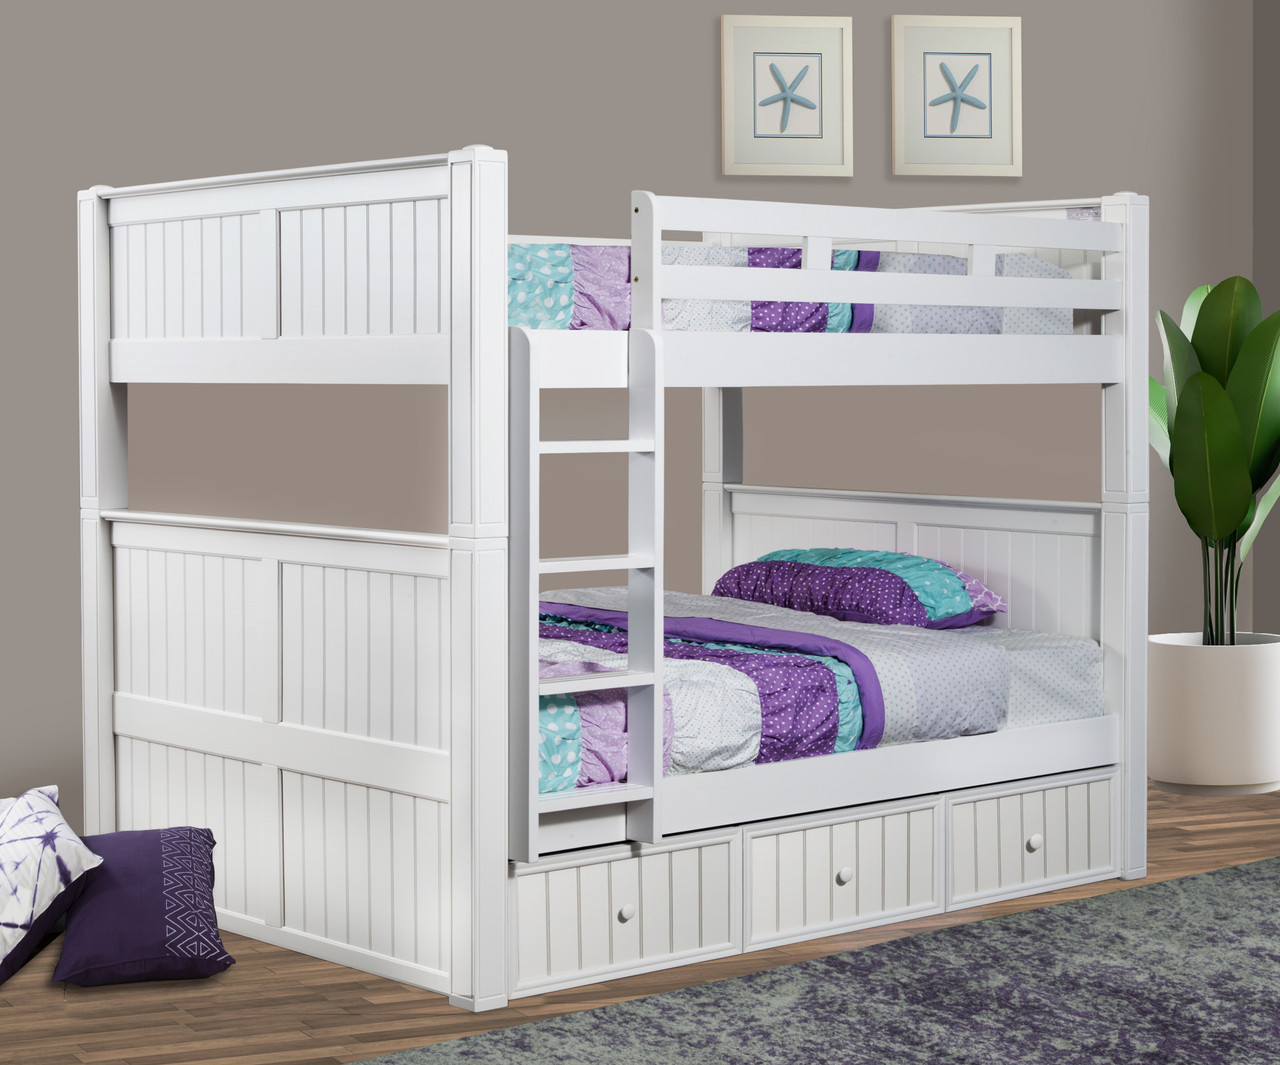 Dillon Queen Over Queen Bunk Bed With Storage And Trundle Reviews